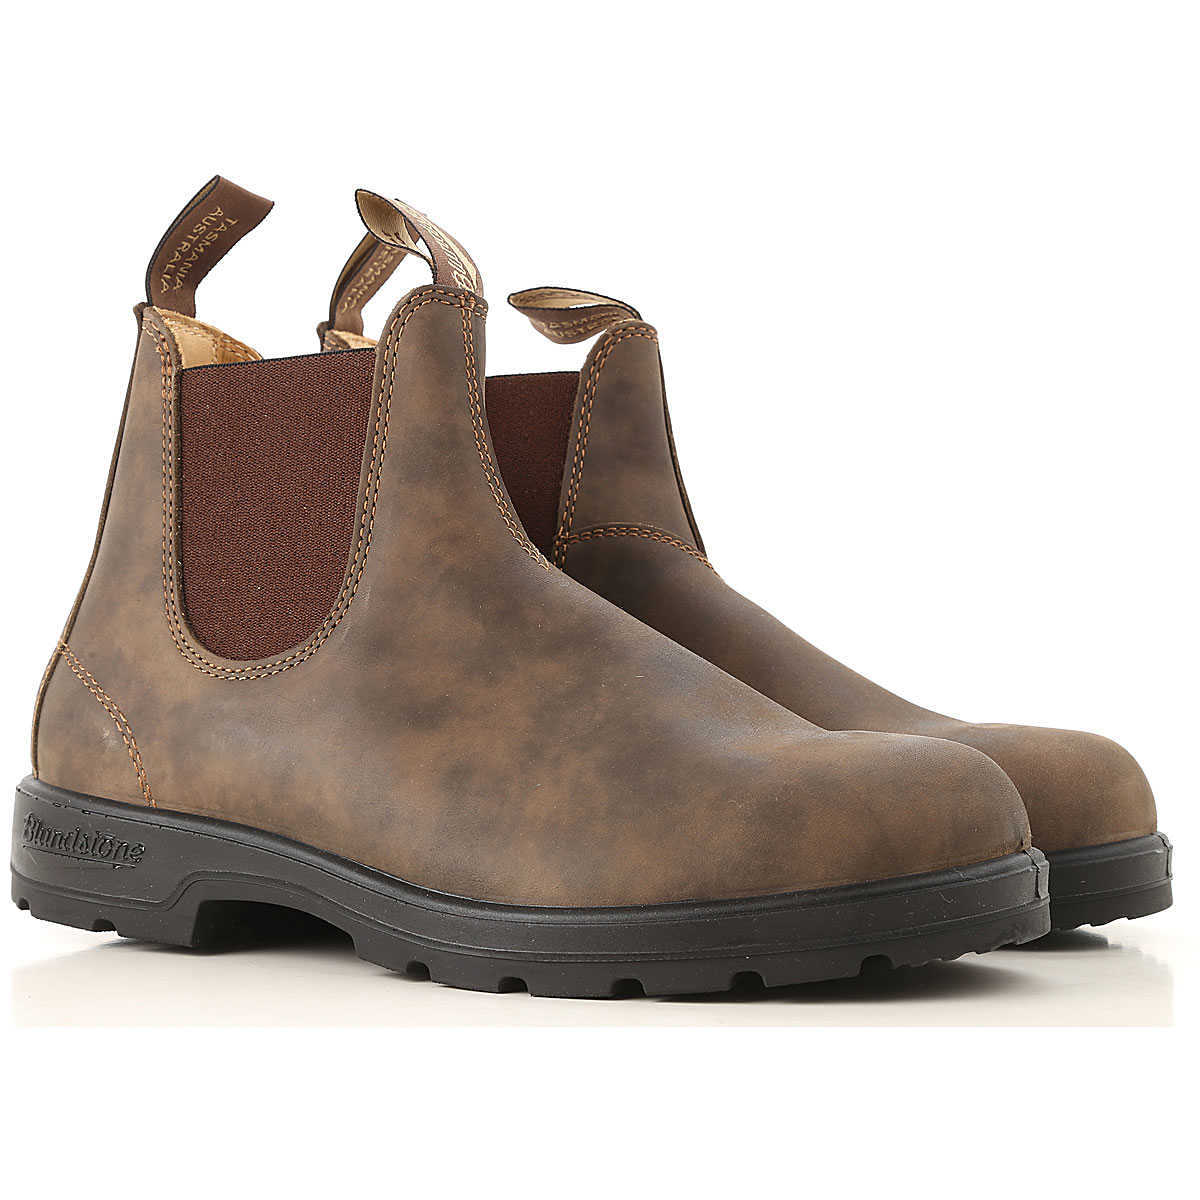 Blundstone Boots for Men Booties On Sale DK - GOOFASH - Mens BOOTS